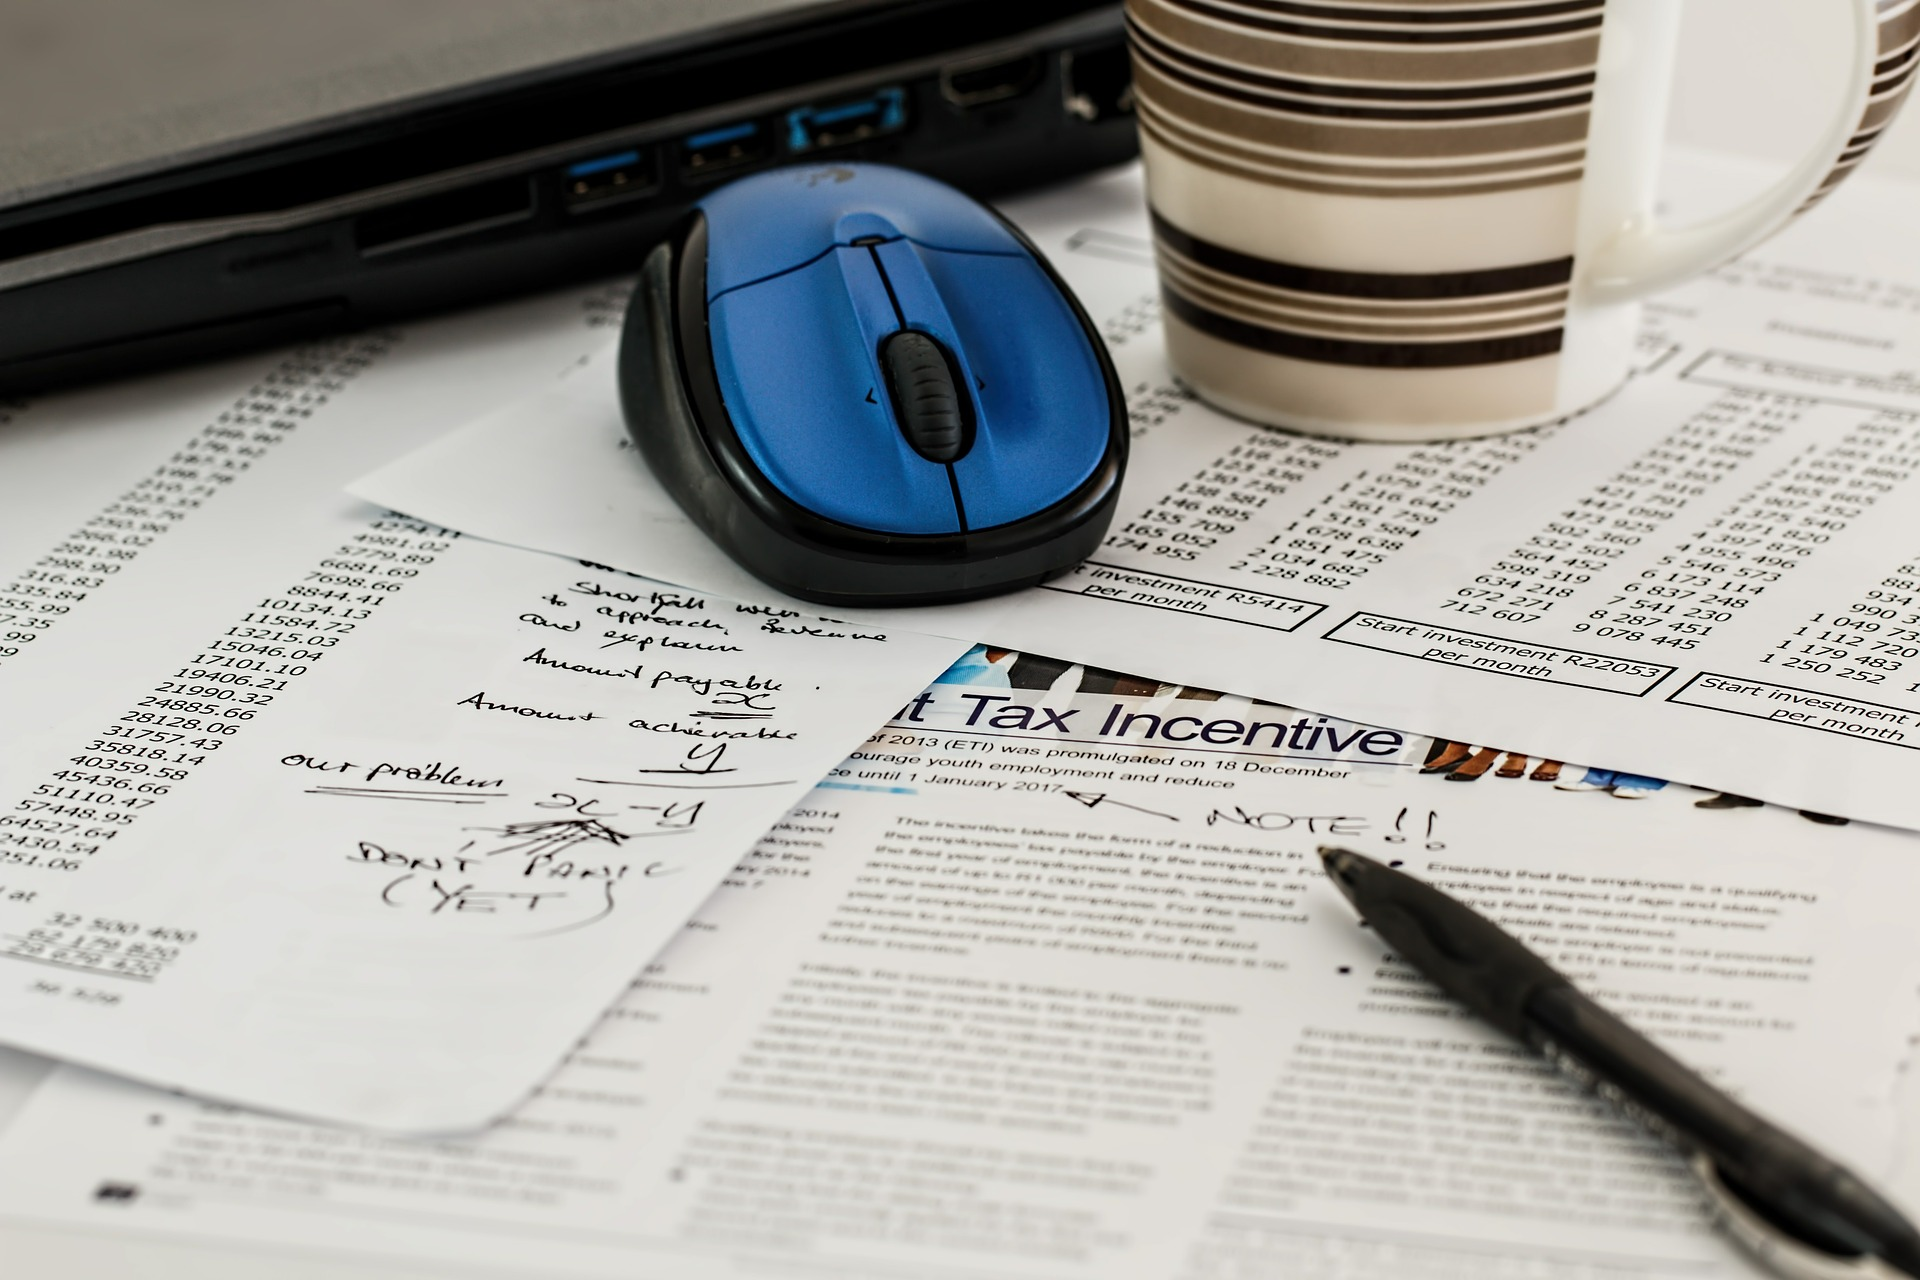 Image of taxes forms